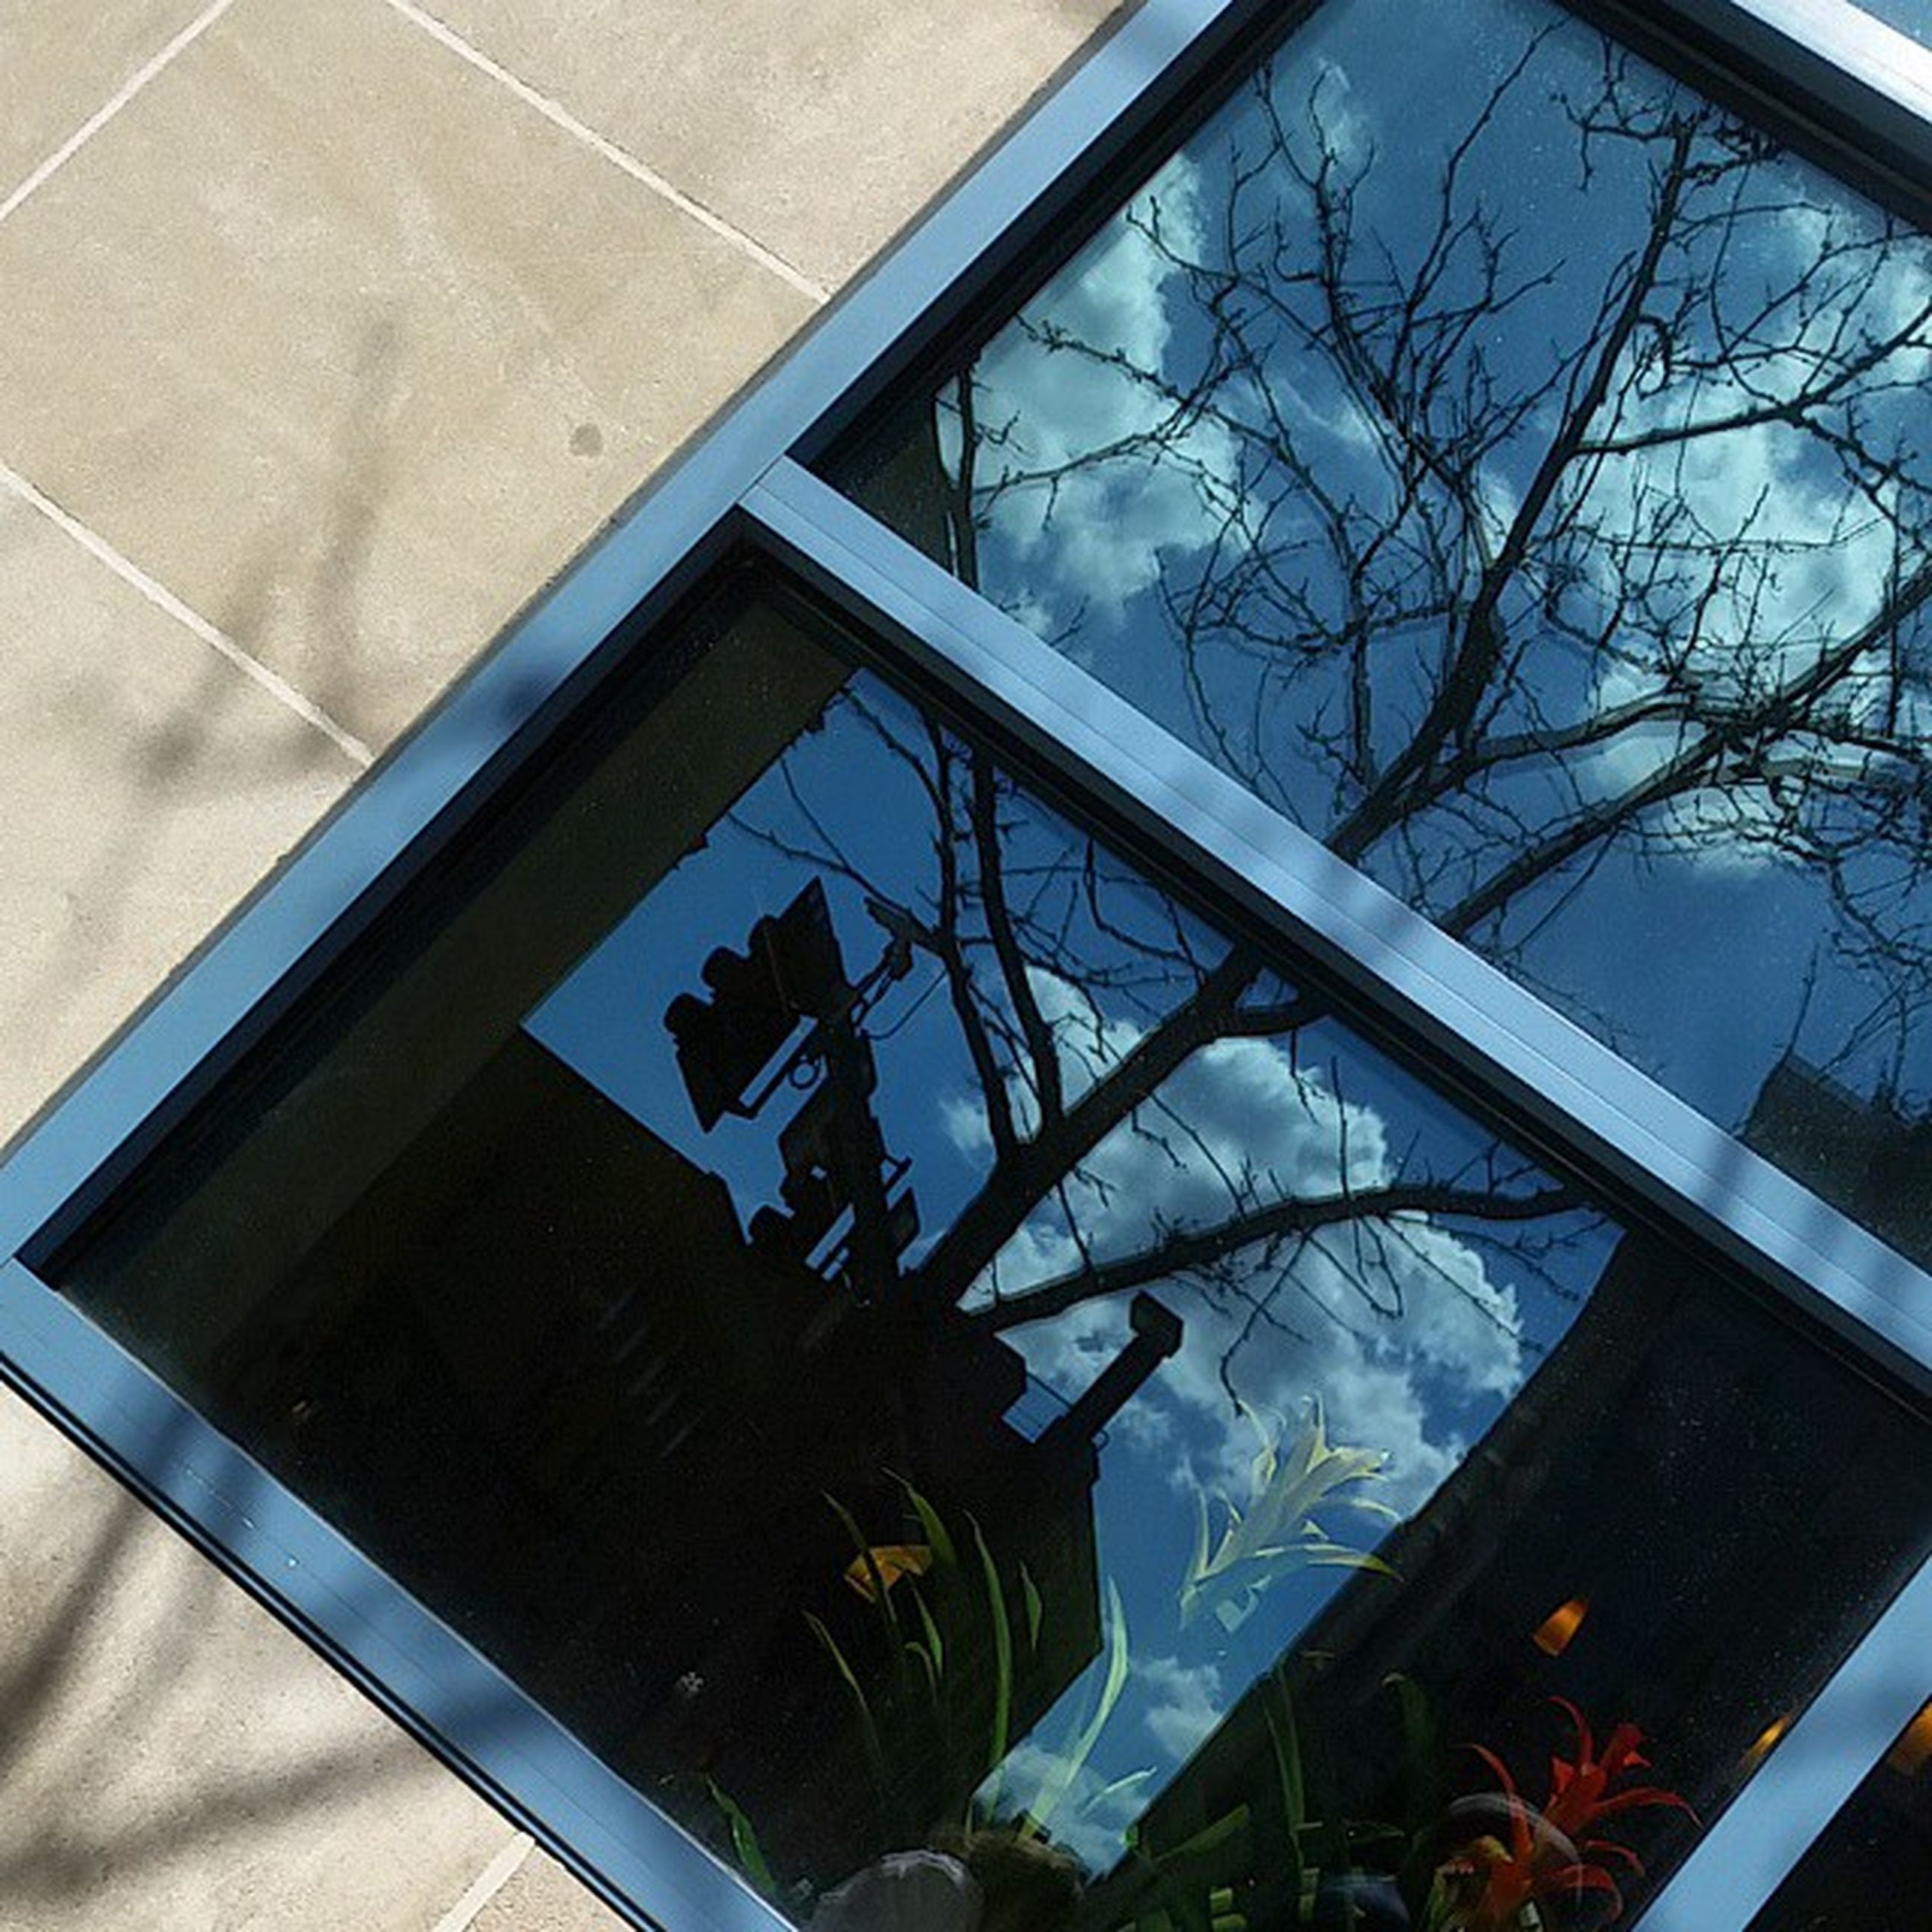 glass - material, window, indoors, transparent, reflection, glass, architecture, built structure, low angle view, day, sky, high angle view, no people, building exterior, blue, tree, sunlight, cloud - sky, building, geometric shape